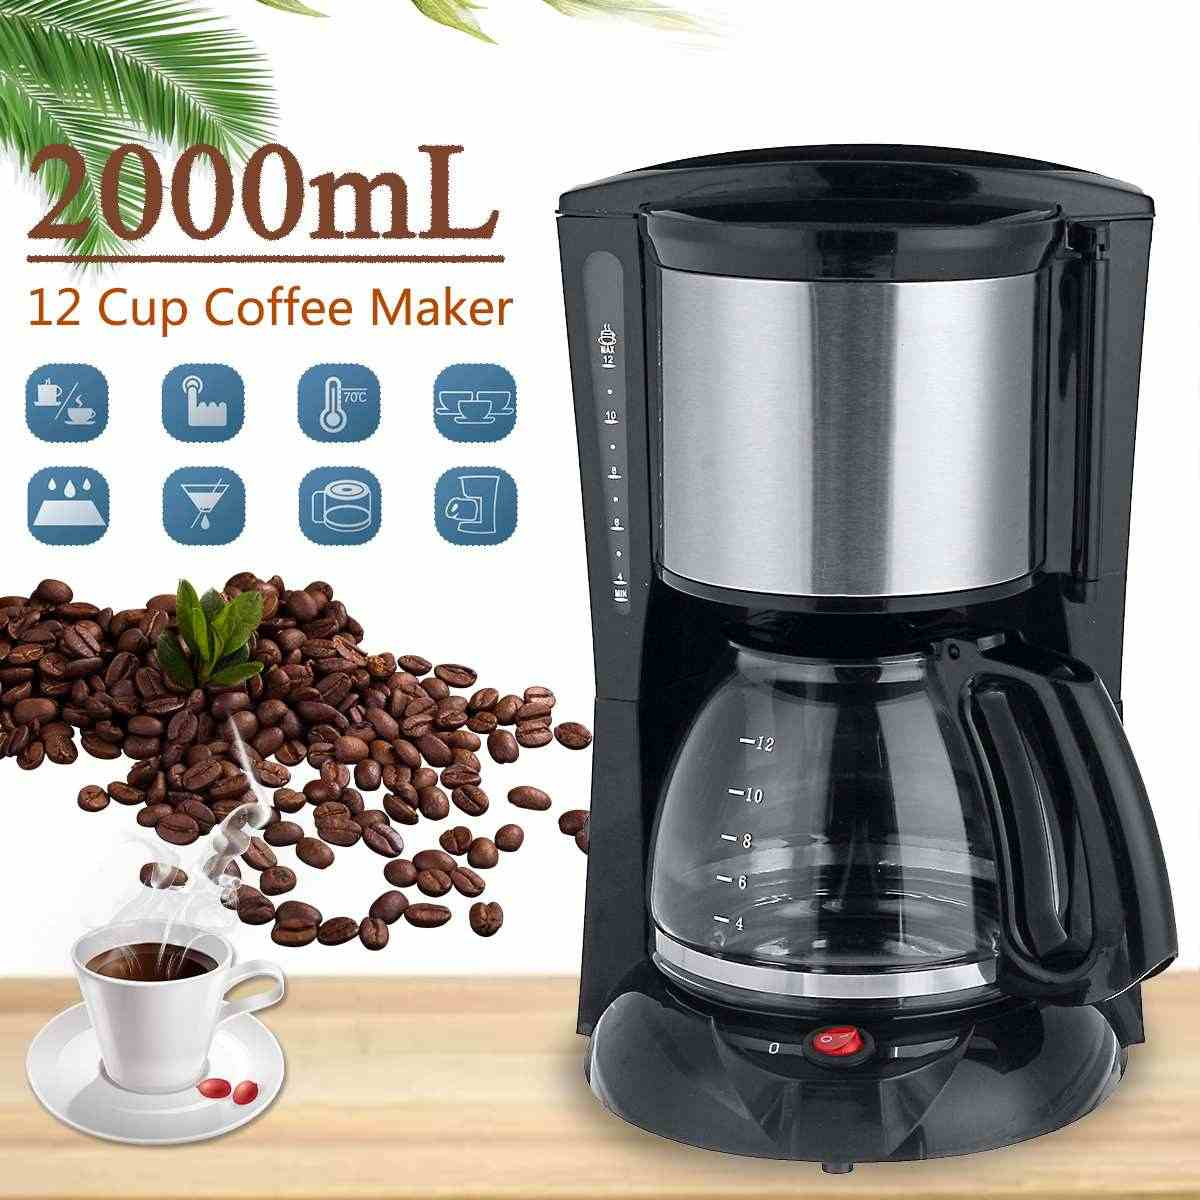 Becornce 1 8 2l Household Office American Style Drip Tea Coffee Making Machine 12 Cups Coffee Maker 900w Temperature Control Aliexpress